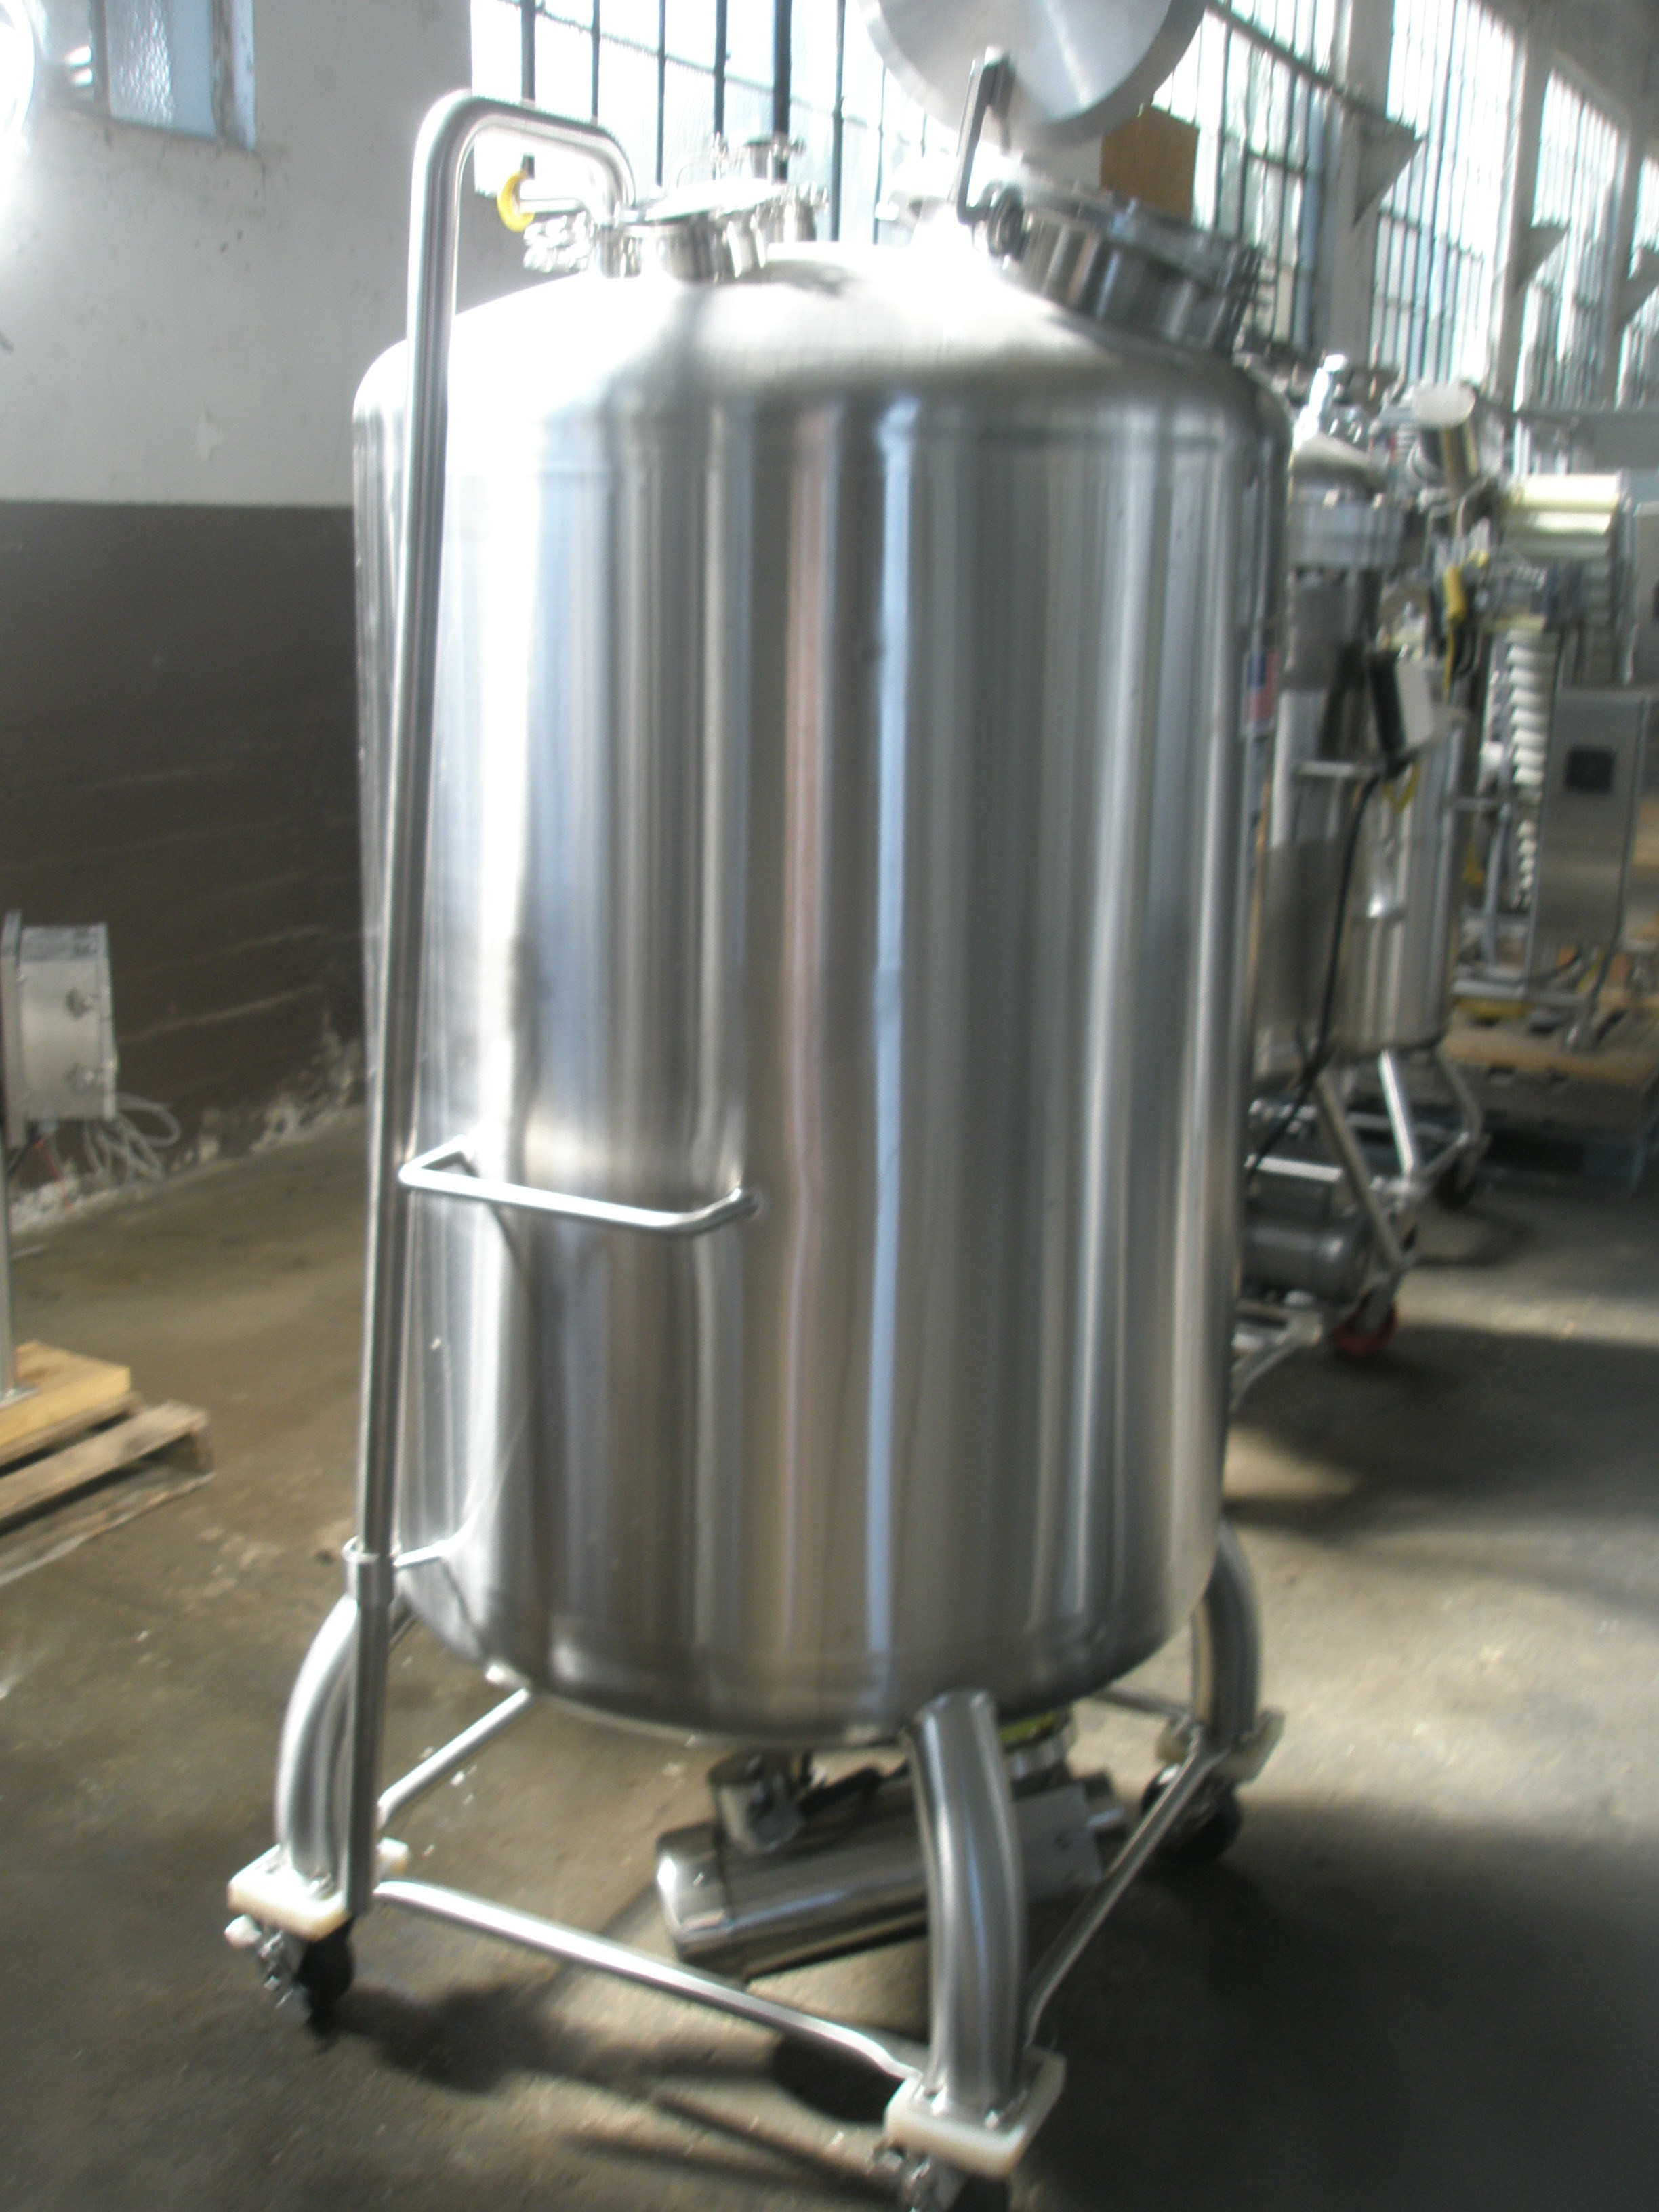 Rpm To Hz >> 180 Gal Stainless Fabrication Inc. Stainless Steel Tank ...